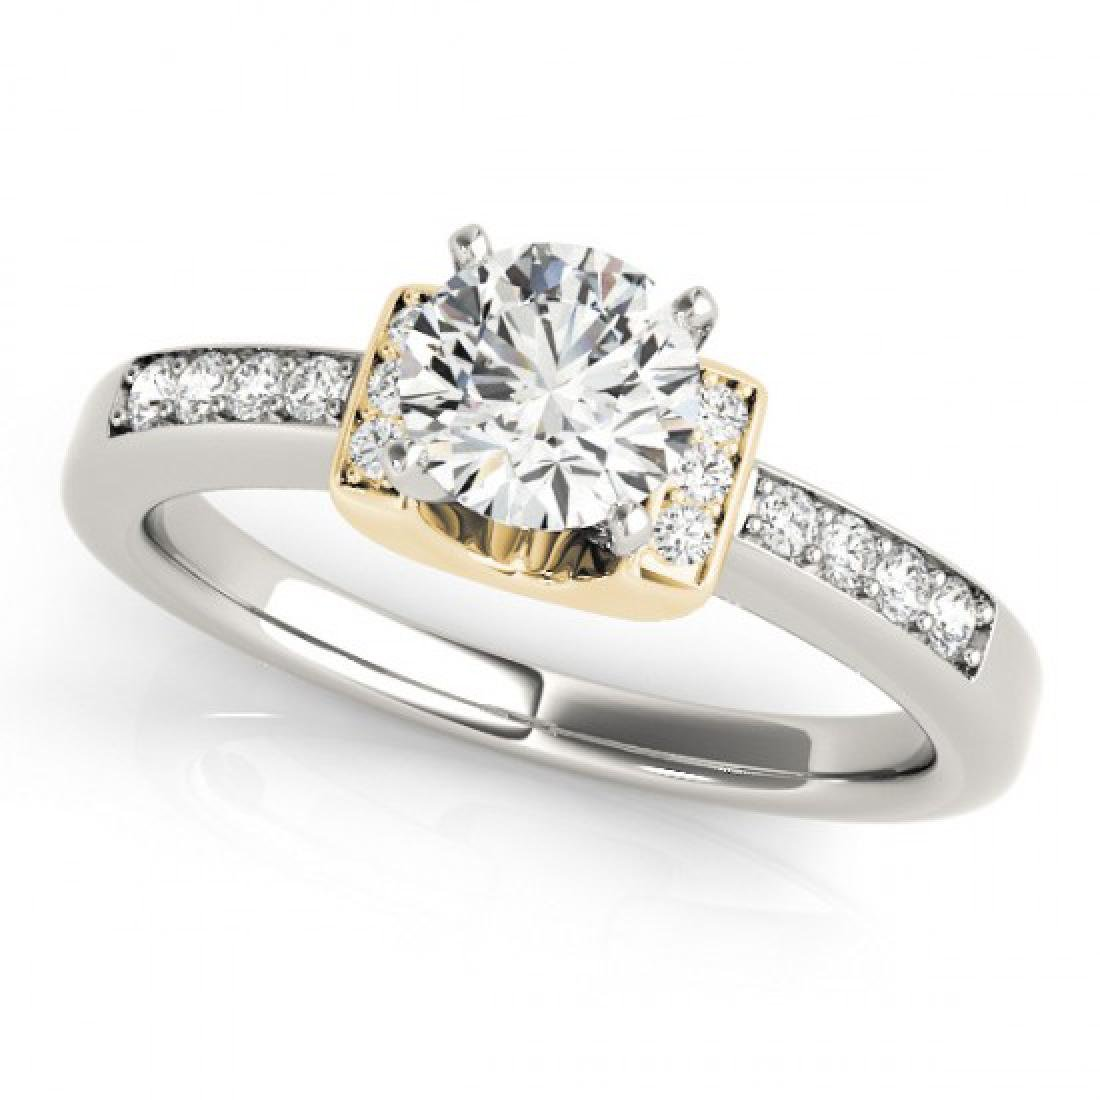 0.86 CTW Certified VS/SI Diamond Solitaire Ring 14K